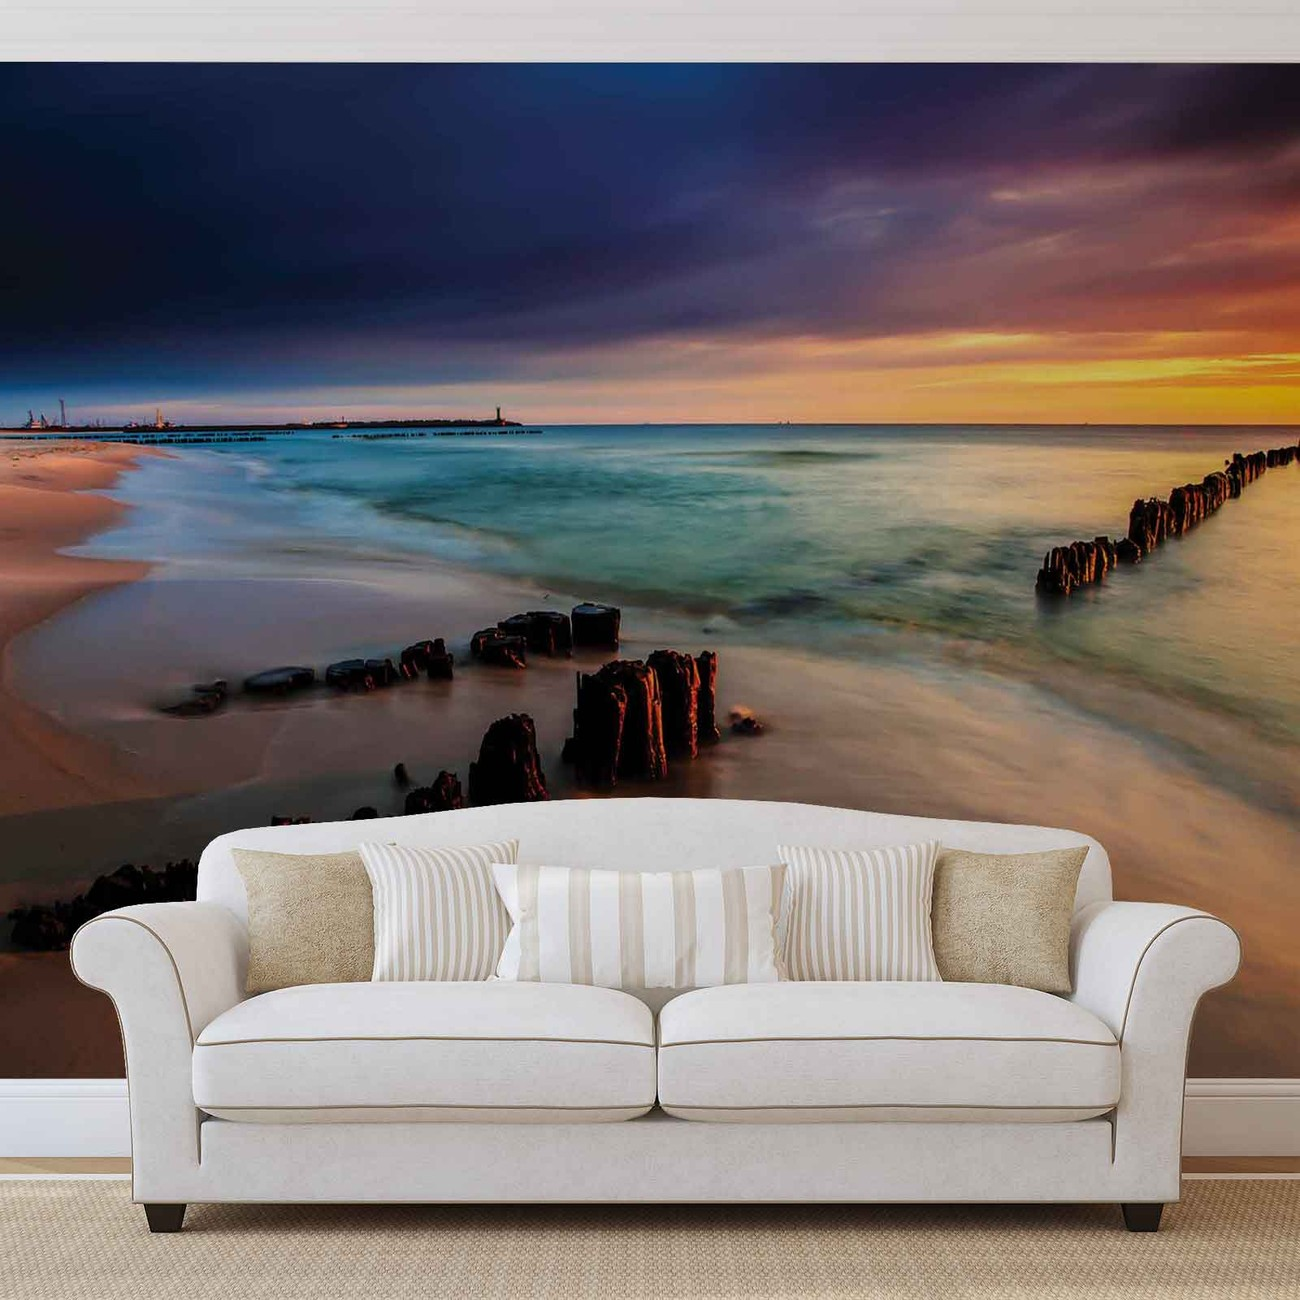 fototapete tapete strand meer sand bei europosters kostenloser versand. Black Bedroom Furniture Sets. Home Design Ideas